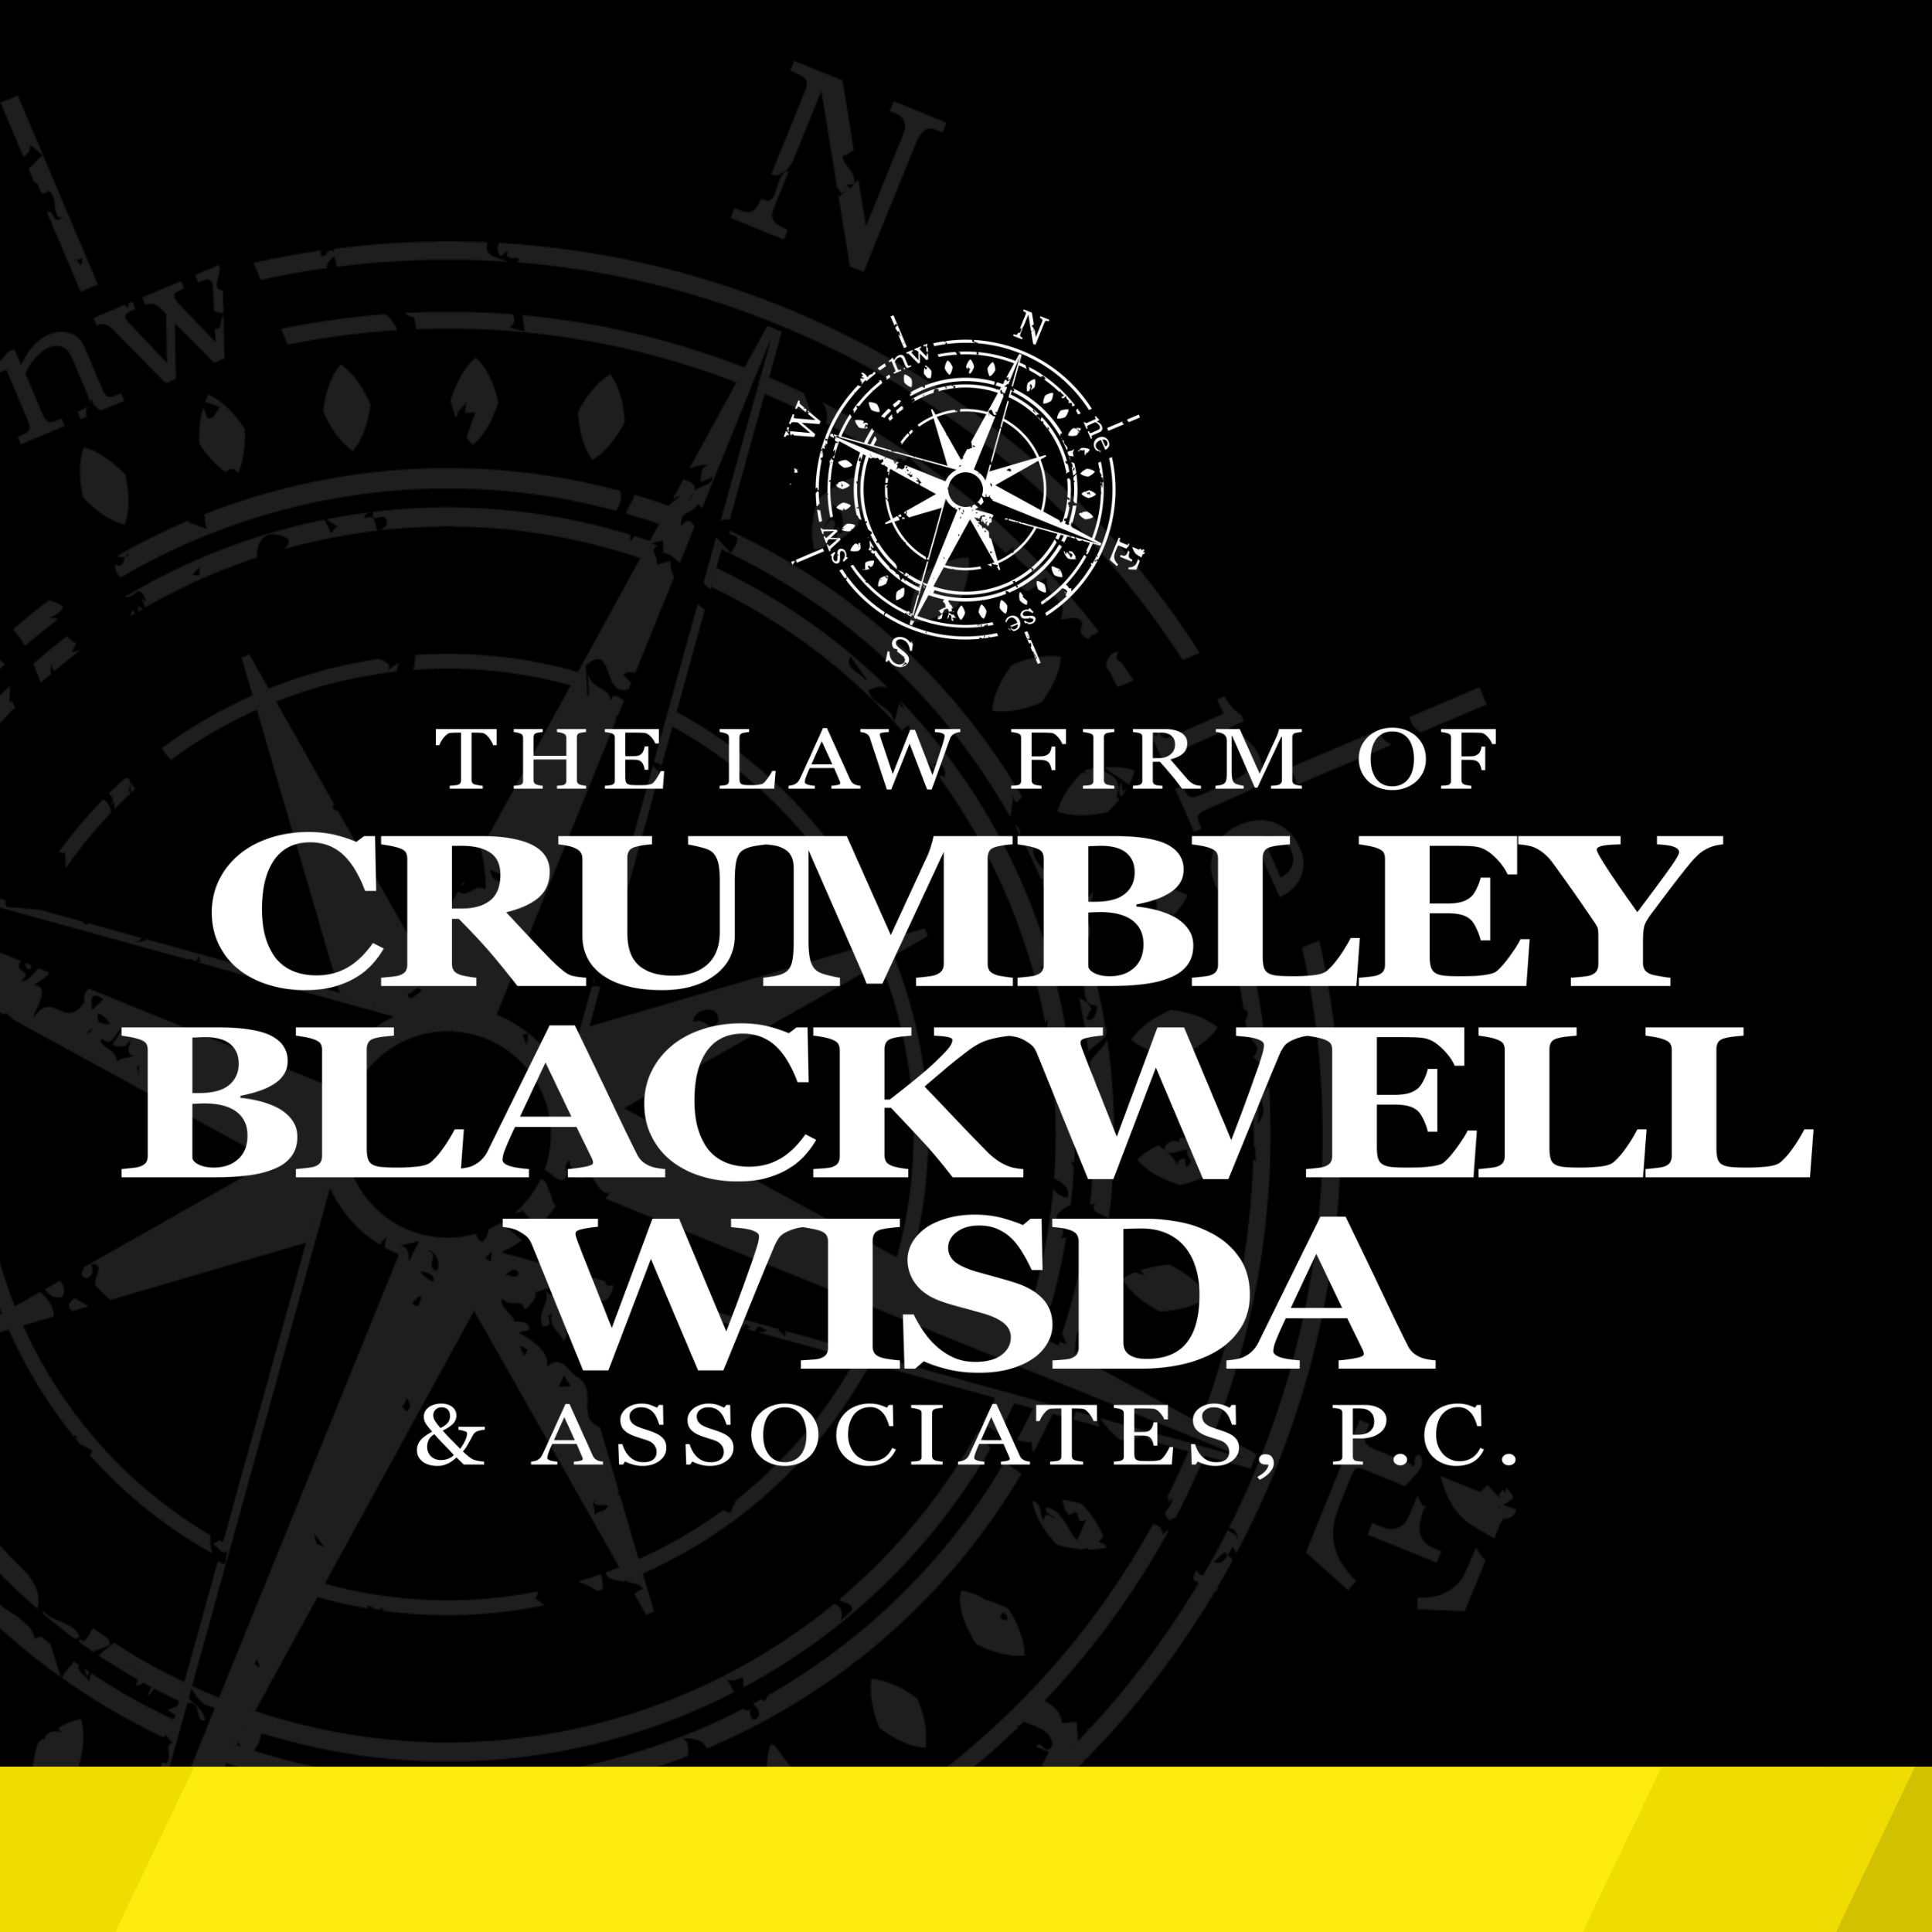 Crumbley, Blackwell, Wisda & Associates, P.C.